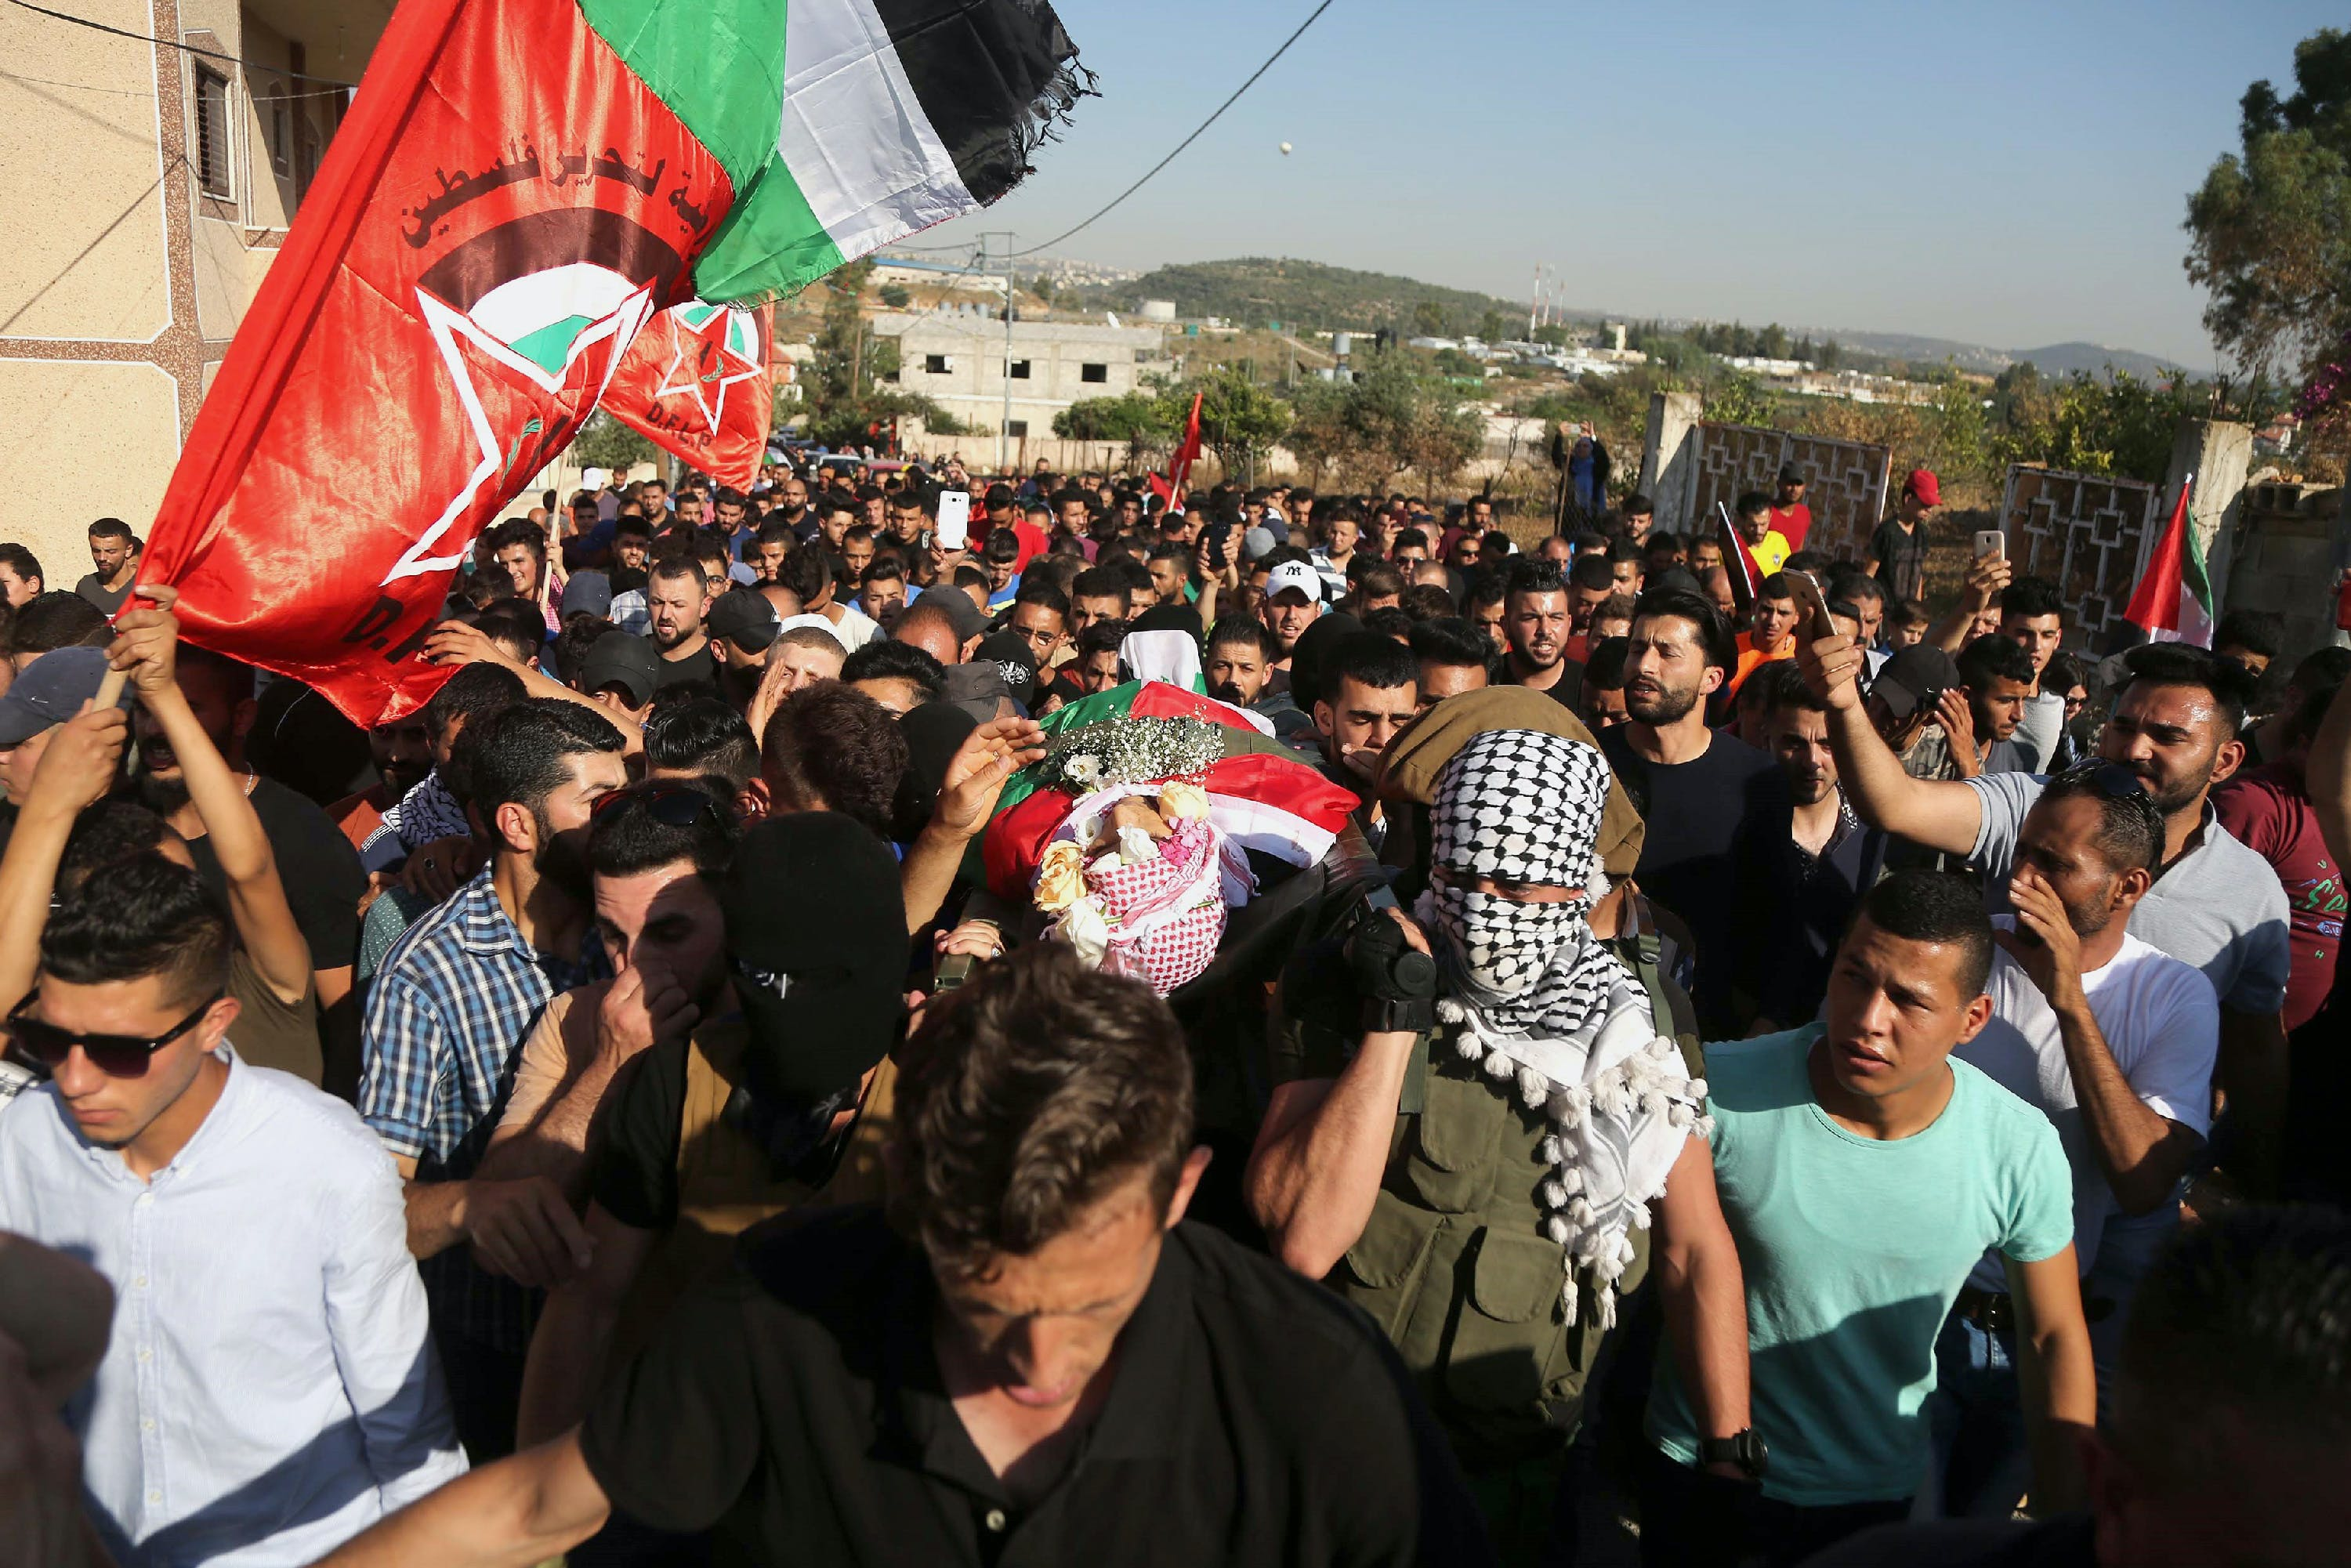 RAMALLAH, WEST BANK - JUNE 06: Palestinians carry the dead body of Ezz al-Tamimi, 21, who was killed by Israeli forces, at a checkpoint, as Israeli soldiers intervene them during his funeral ceremony near Nabi Saleh district of Ramallah, in West Bank on June 06, 2018. (Photo by Issam Rimawi/Anadolu Agency/Getty Images)